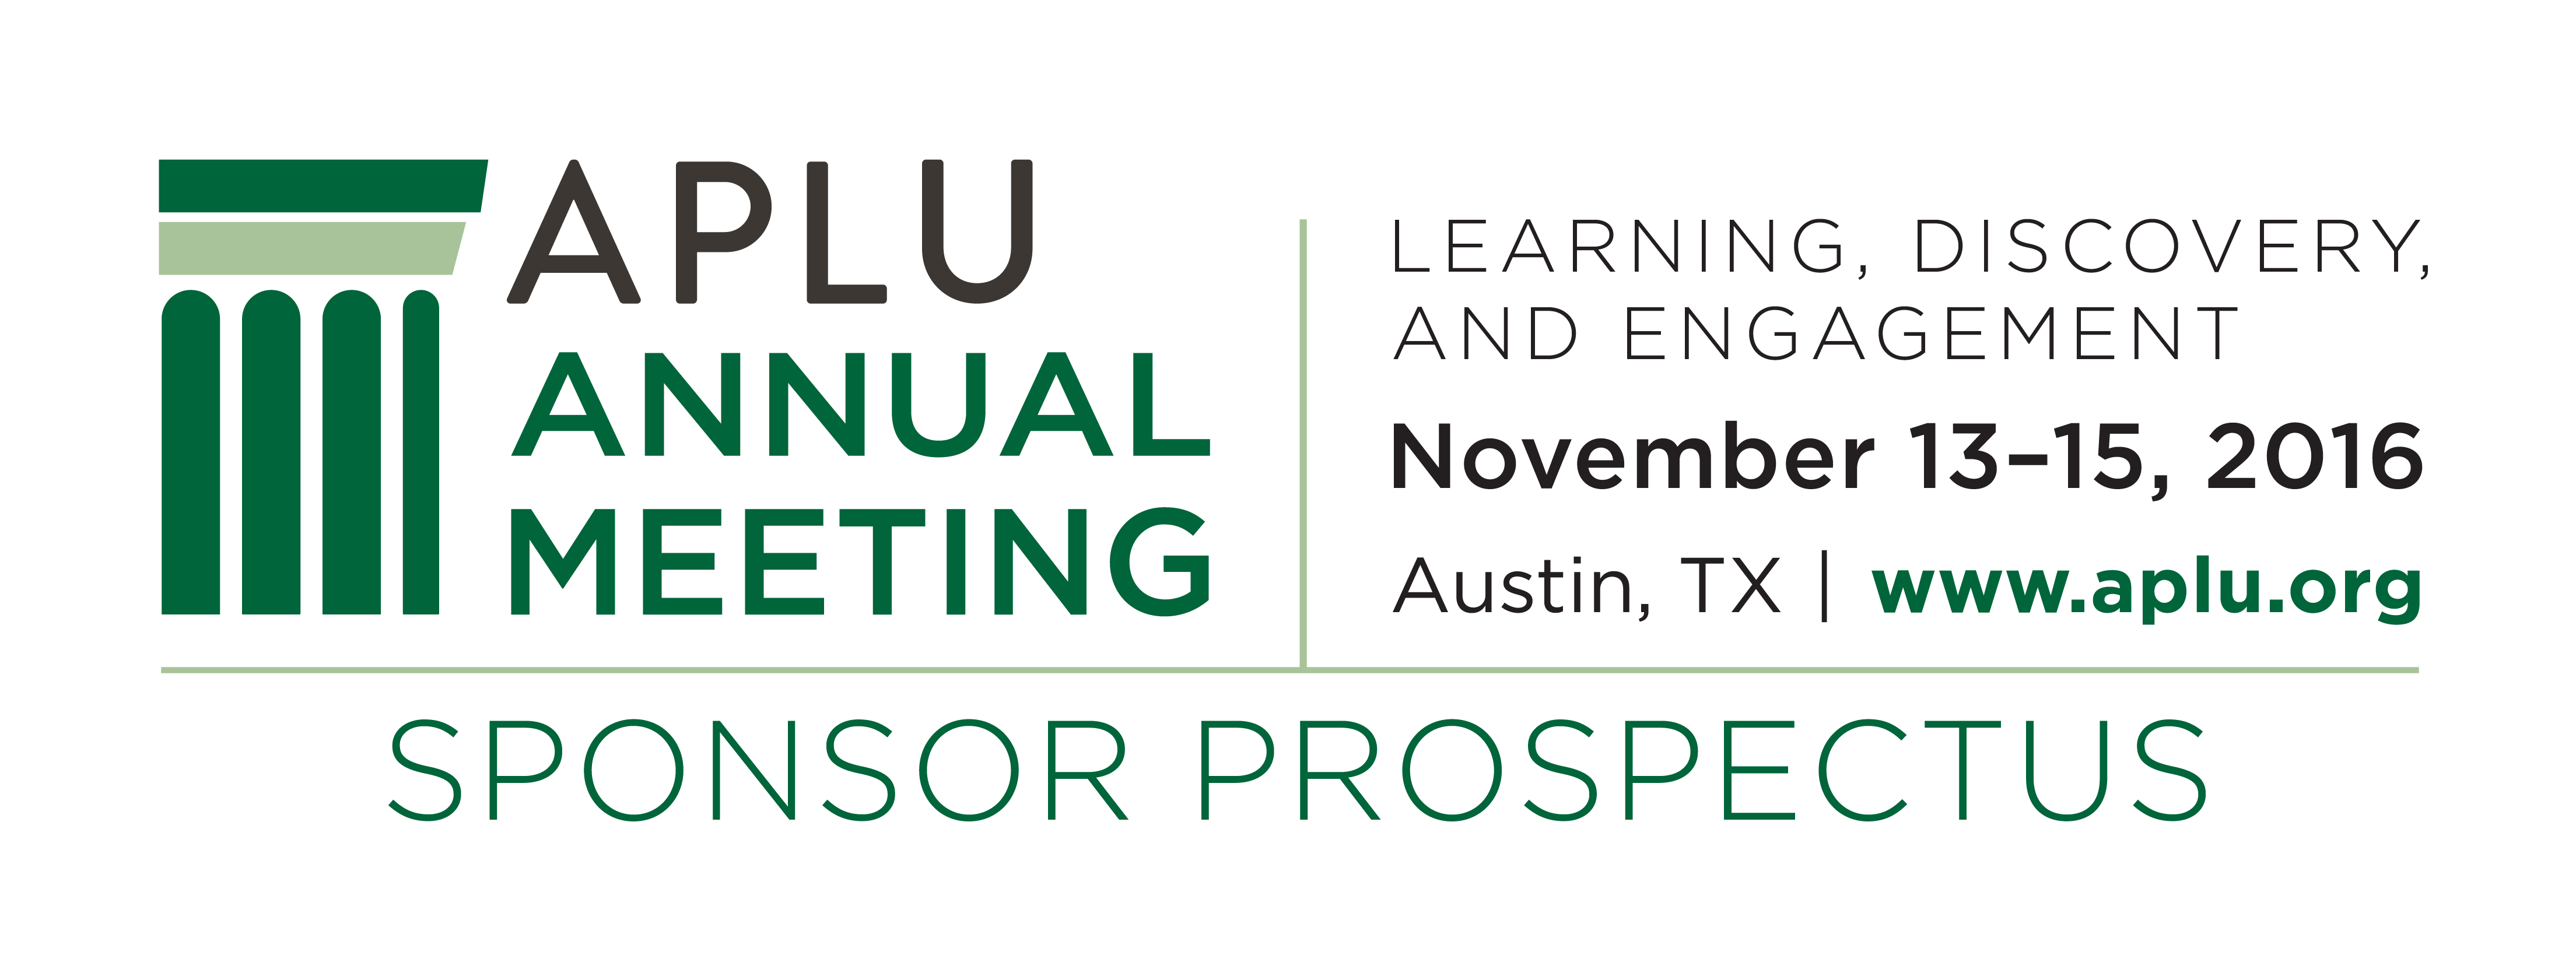 2016 APLU Annual Meeting Sponsors and Exhibitors